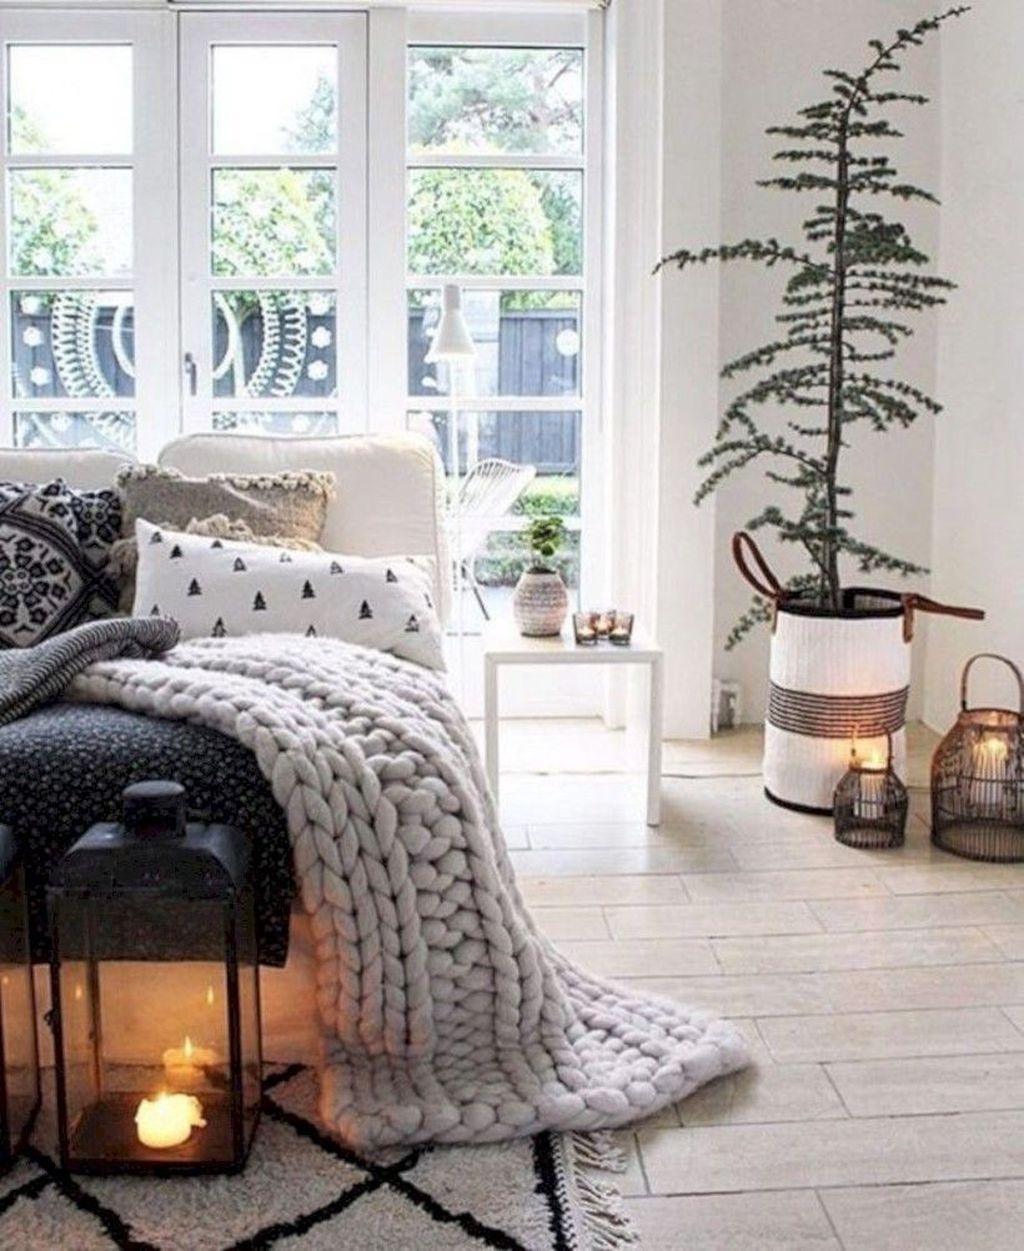 The Best Scandinavian Bedroom Interior Design Ideas 45